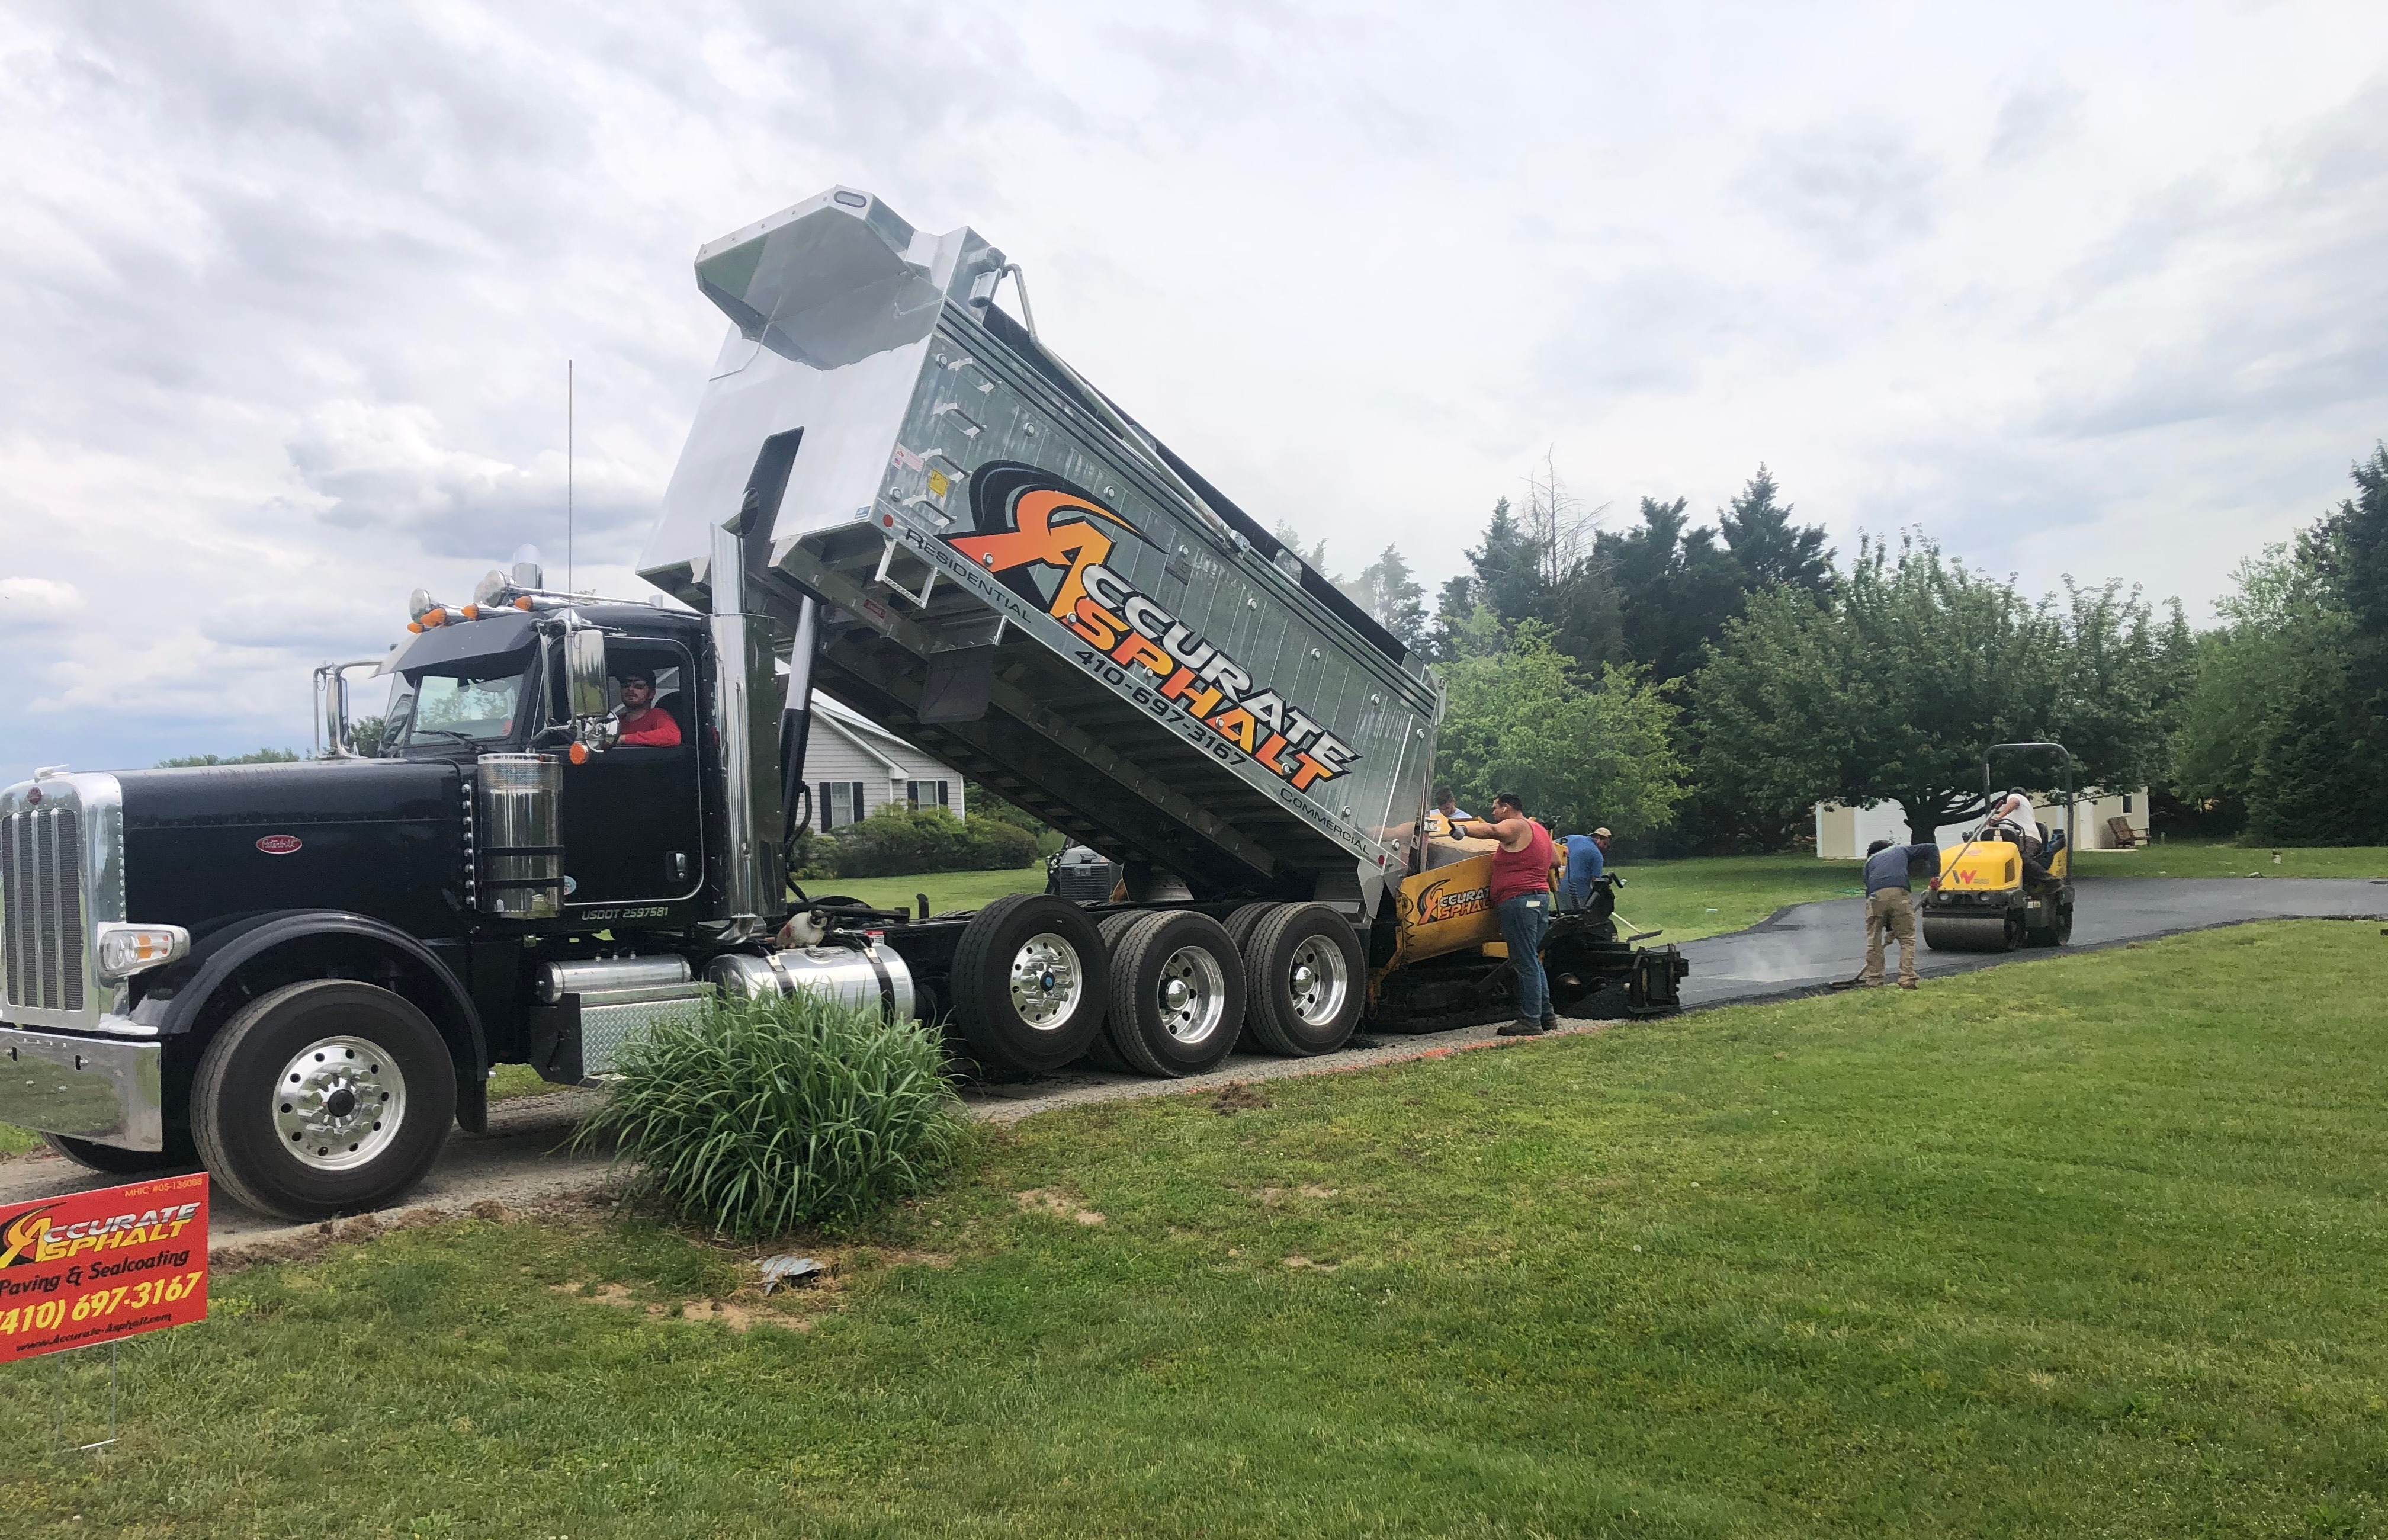 Accurate Asphalt - Residential & Commercial Paving Services